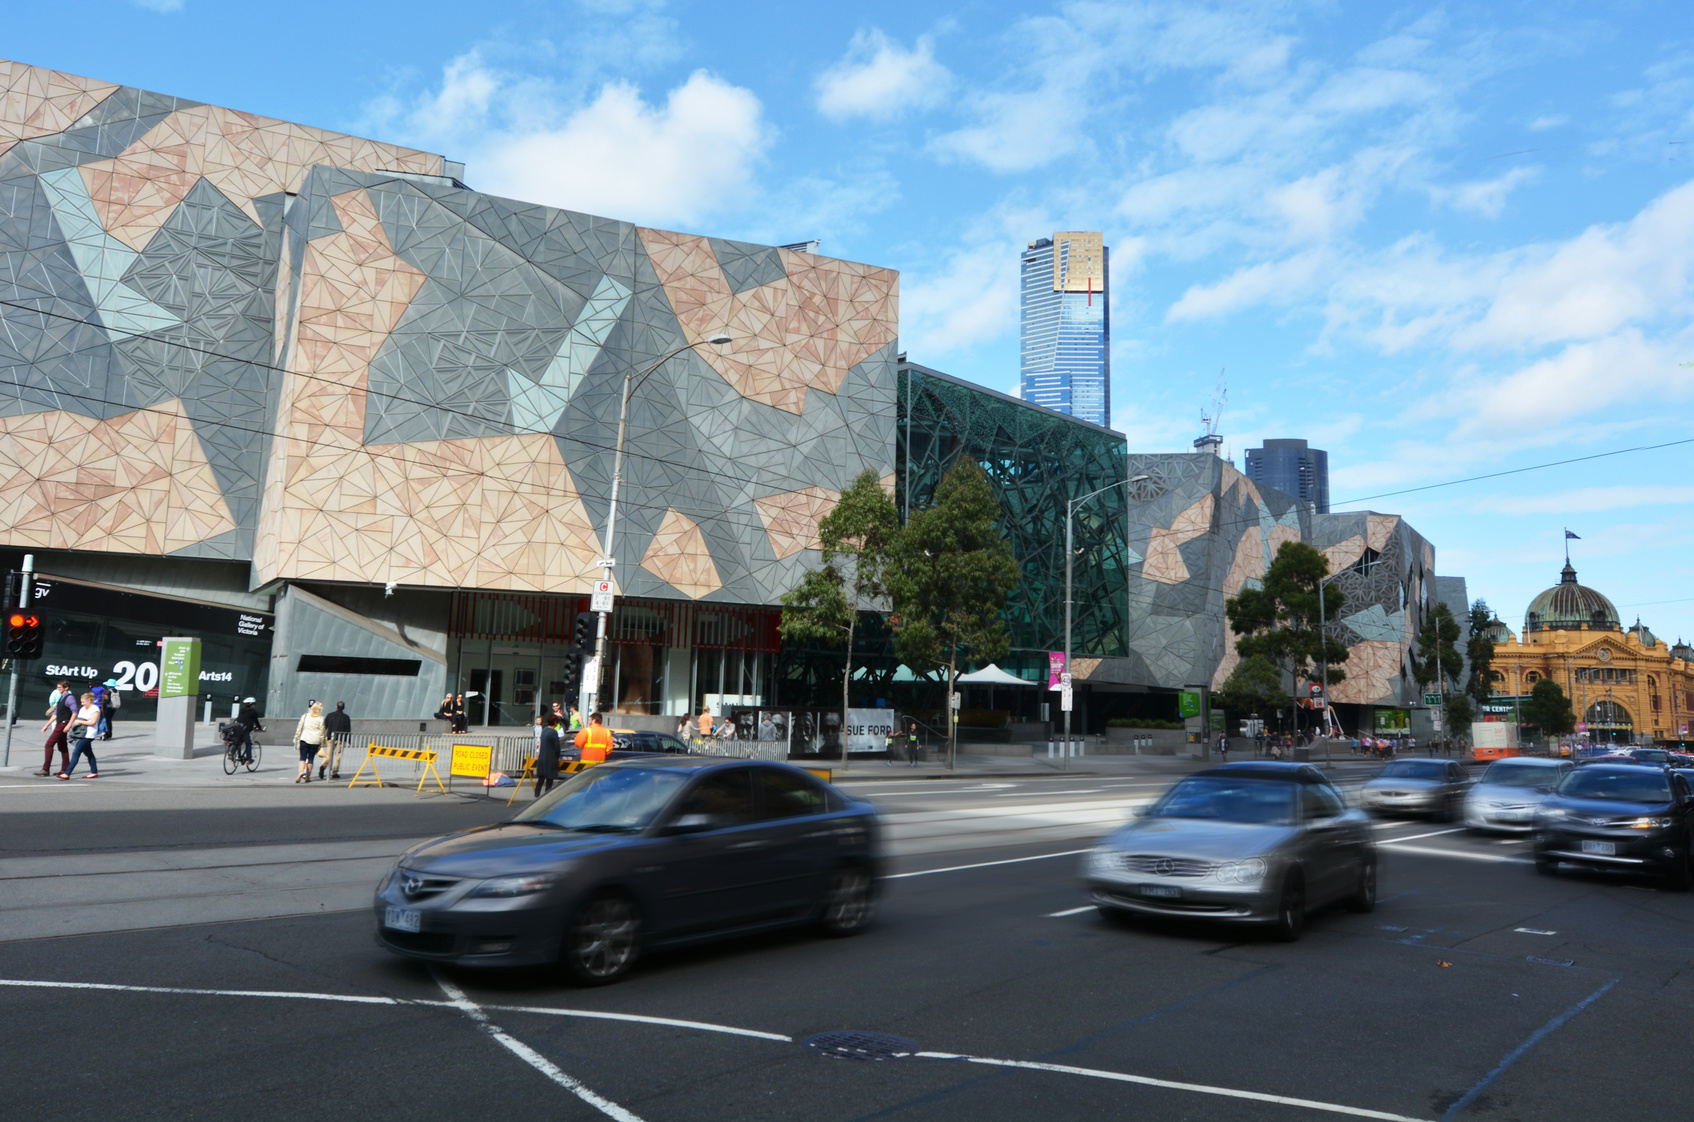 visiter le Australian Centre for the Moving Image à Melbourne